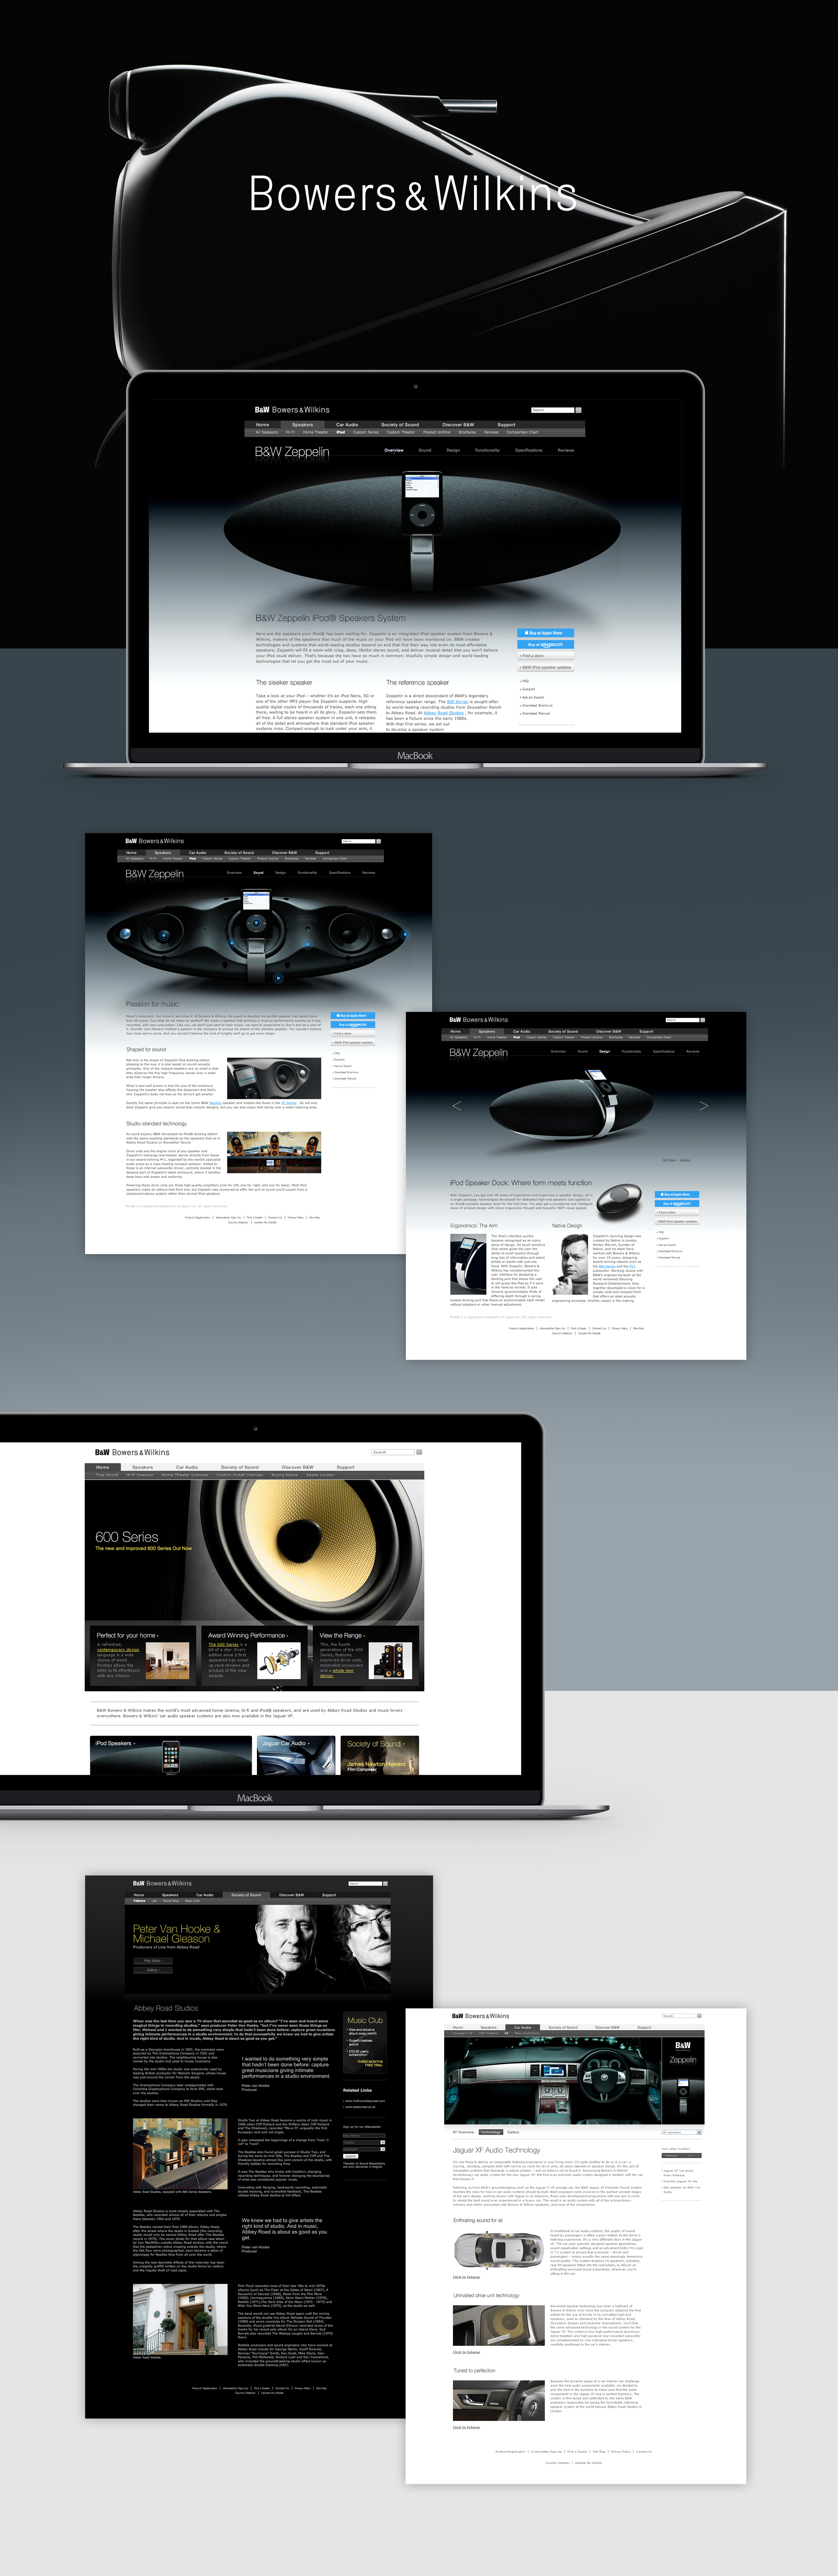 archive-bowers-wilkins